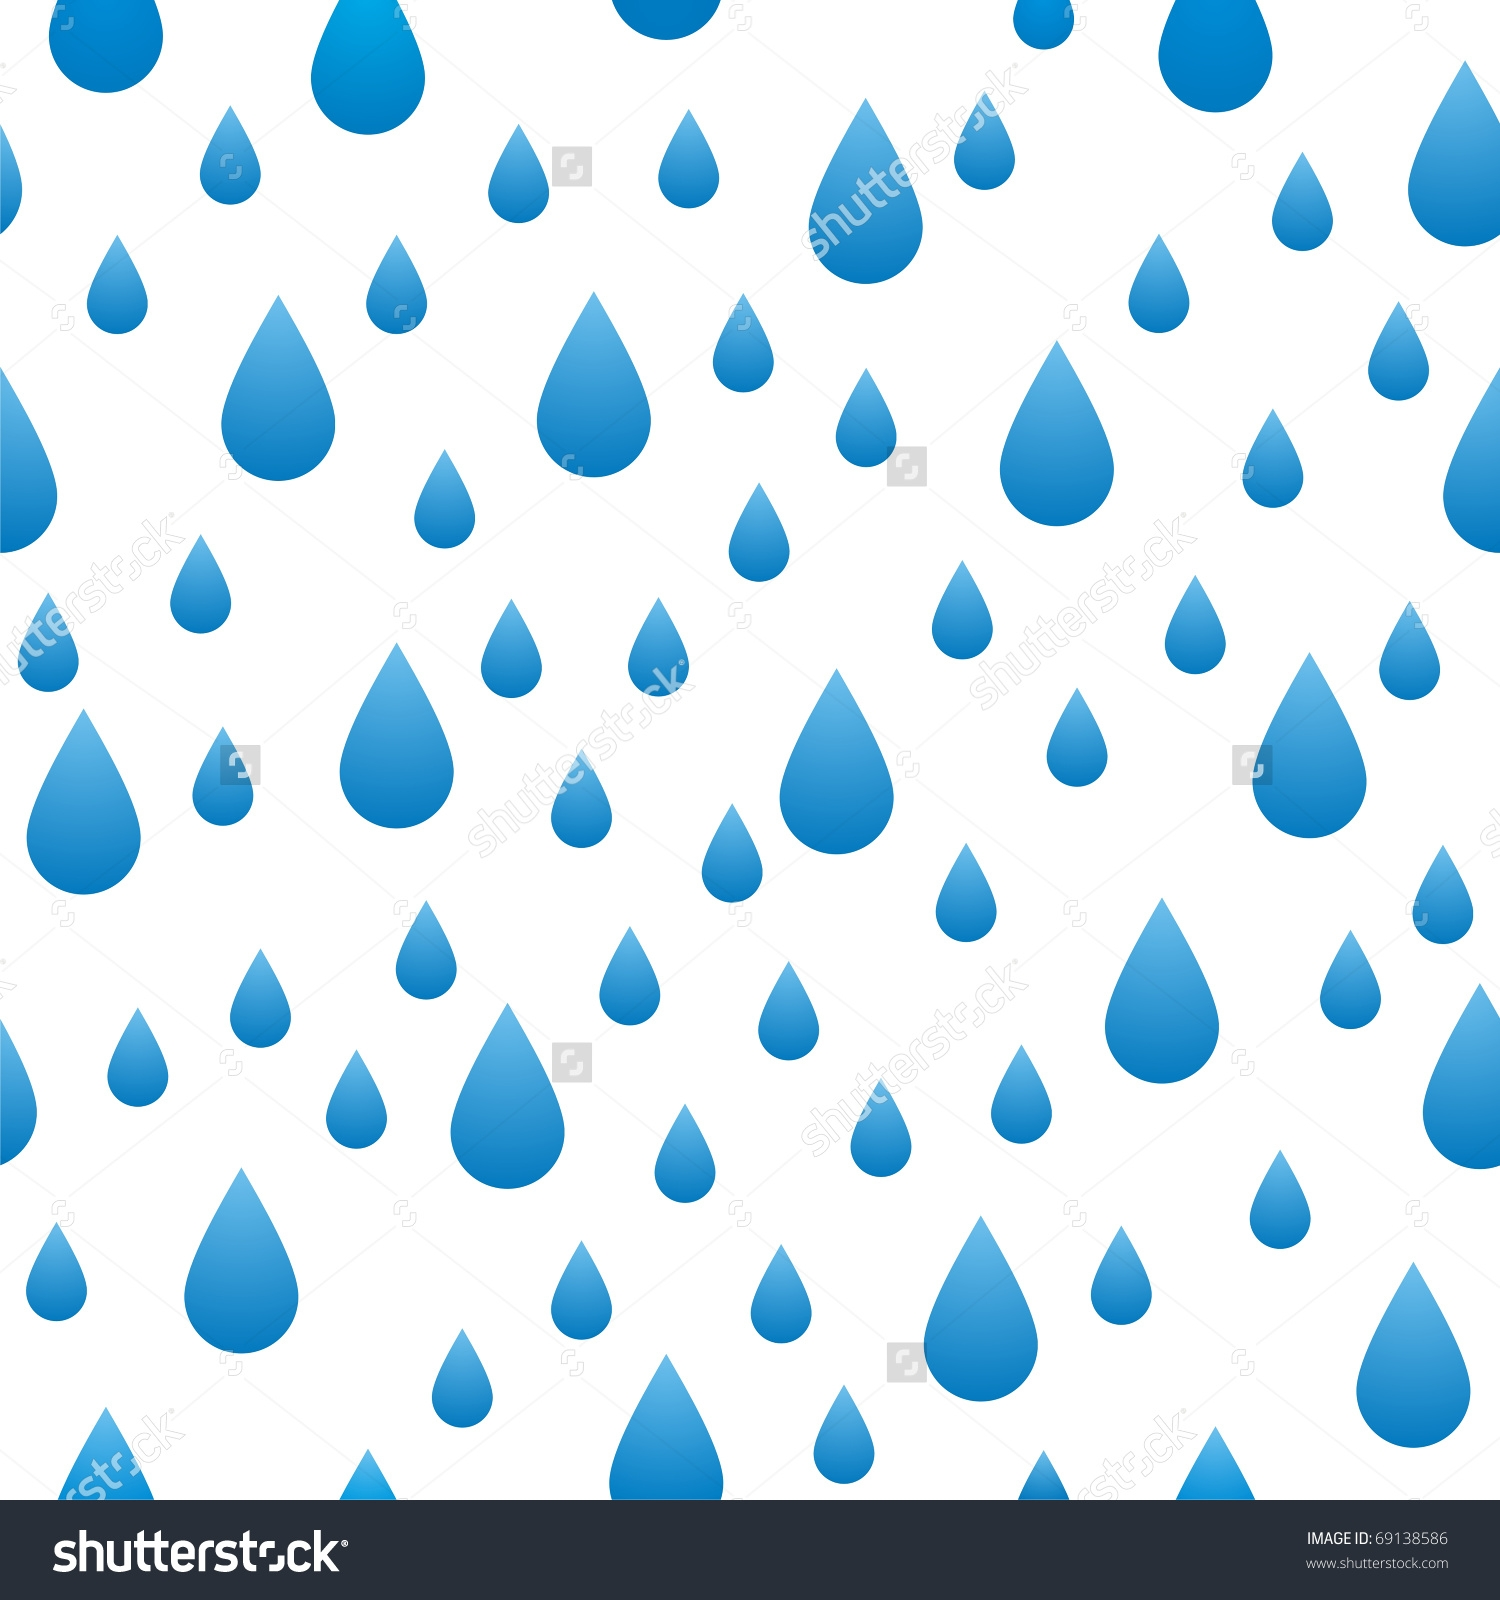 raindrop background wallpapersafari clip art raindrops clipart raindrops clouds